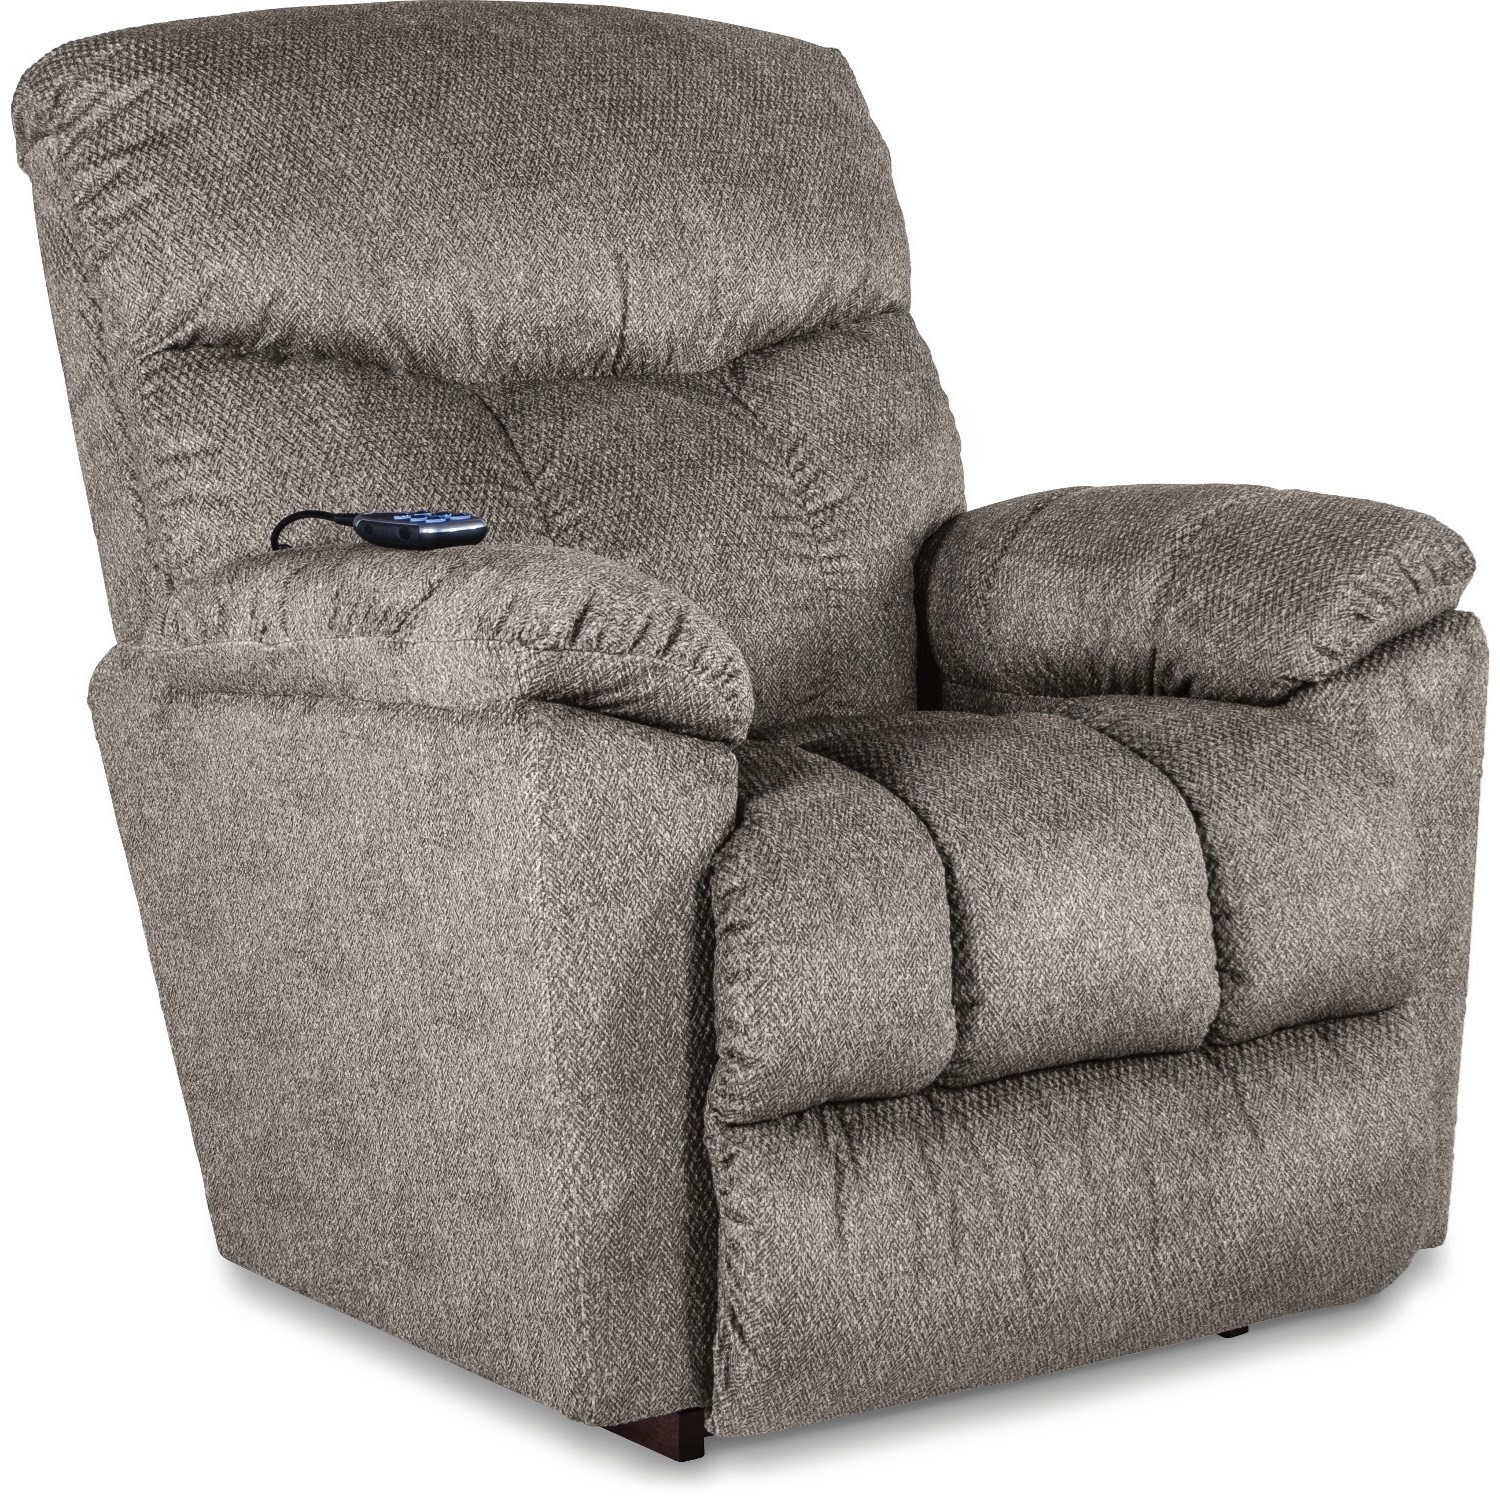 Casual Power-Recline-XRw+ Wall Saver Recliner with Power Tilt Headrest & Lumbar